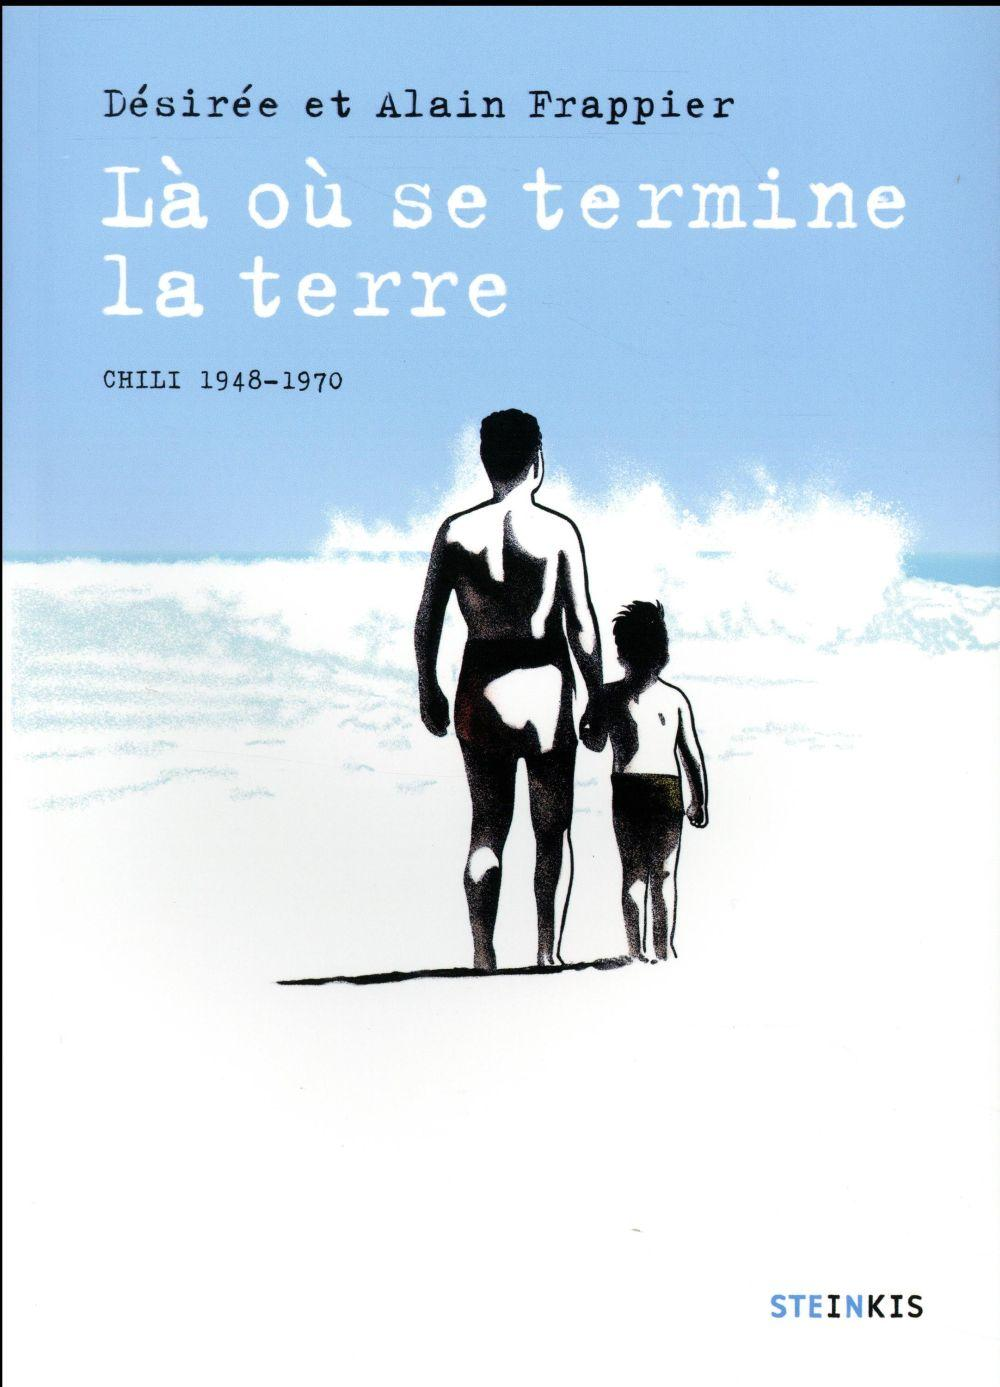 Vente  Là où se termine la terre ; Chili 1948-1970  - Desiree/Frappier Ala  - Desiree Frappier  - Alain Frappier